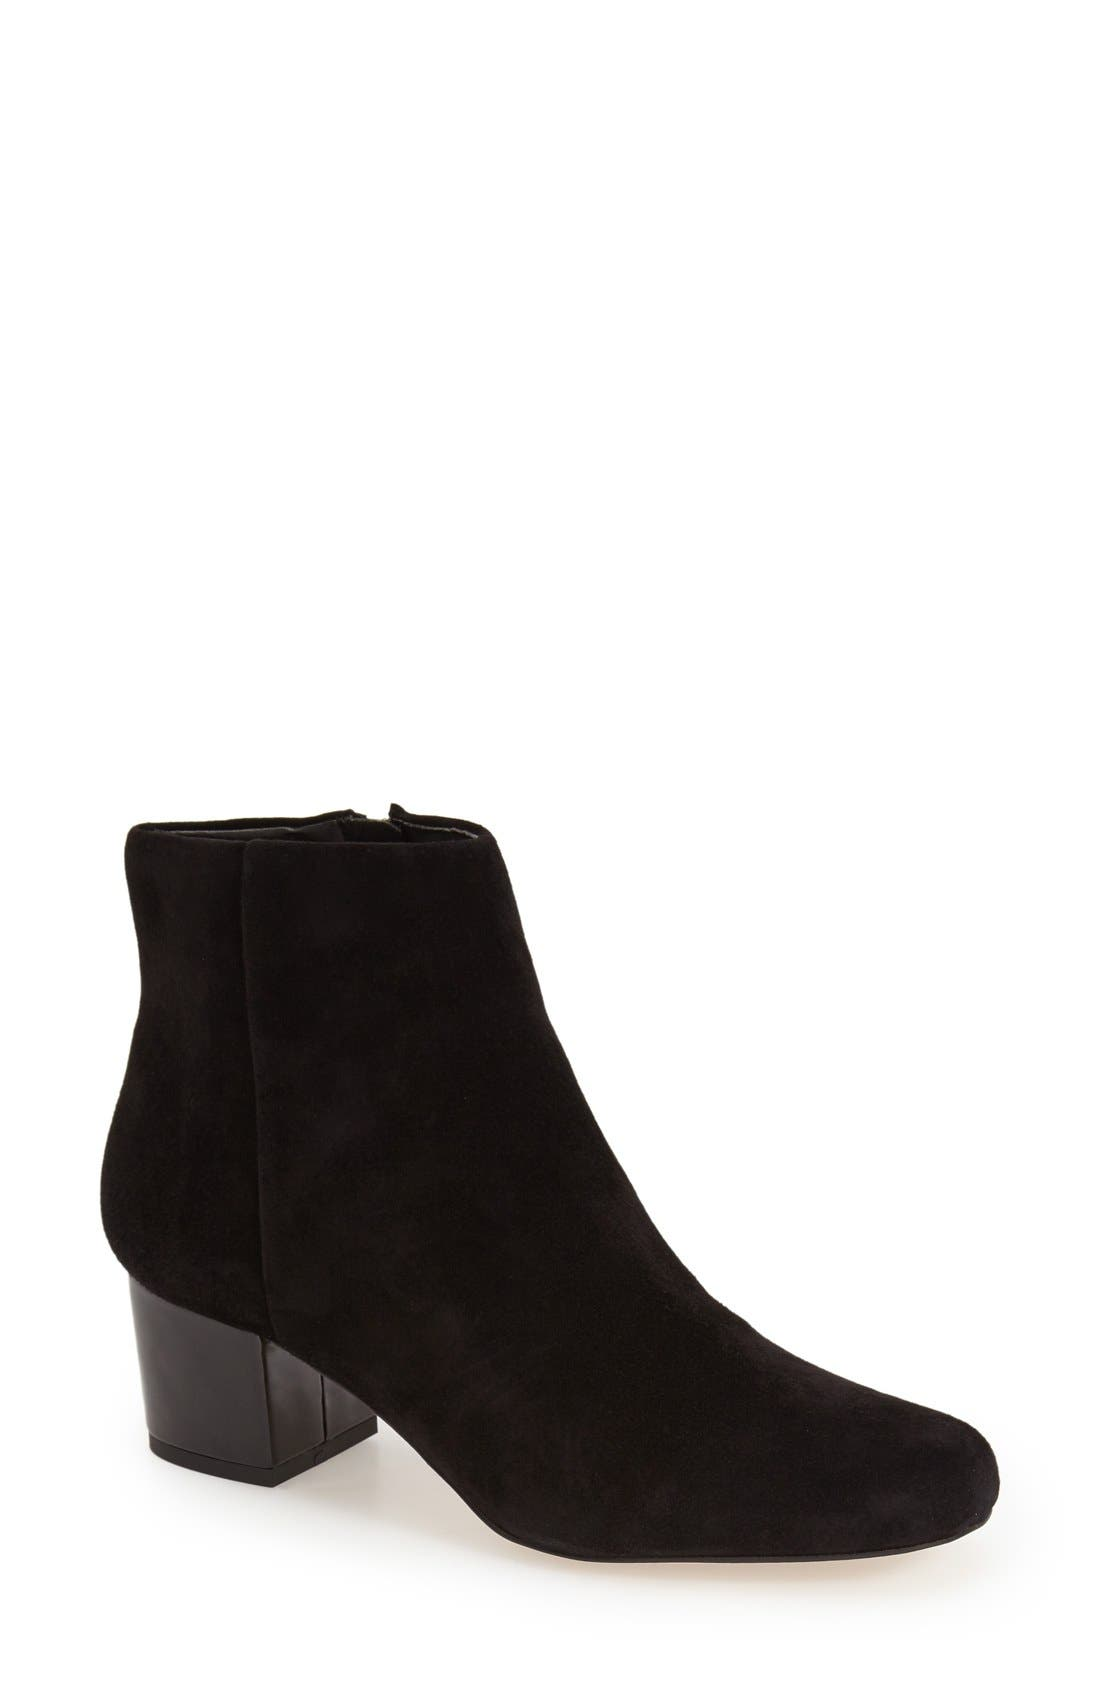 Alternate Image 1 Selected - Sam Edelman 'Edith'  Bootie (Women)